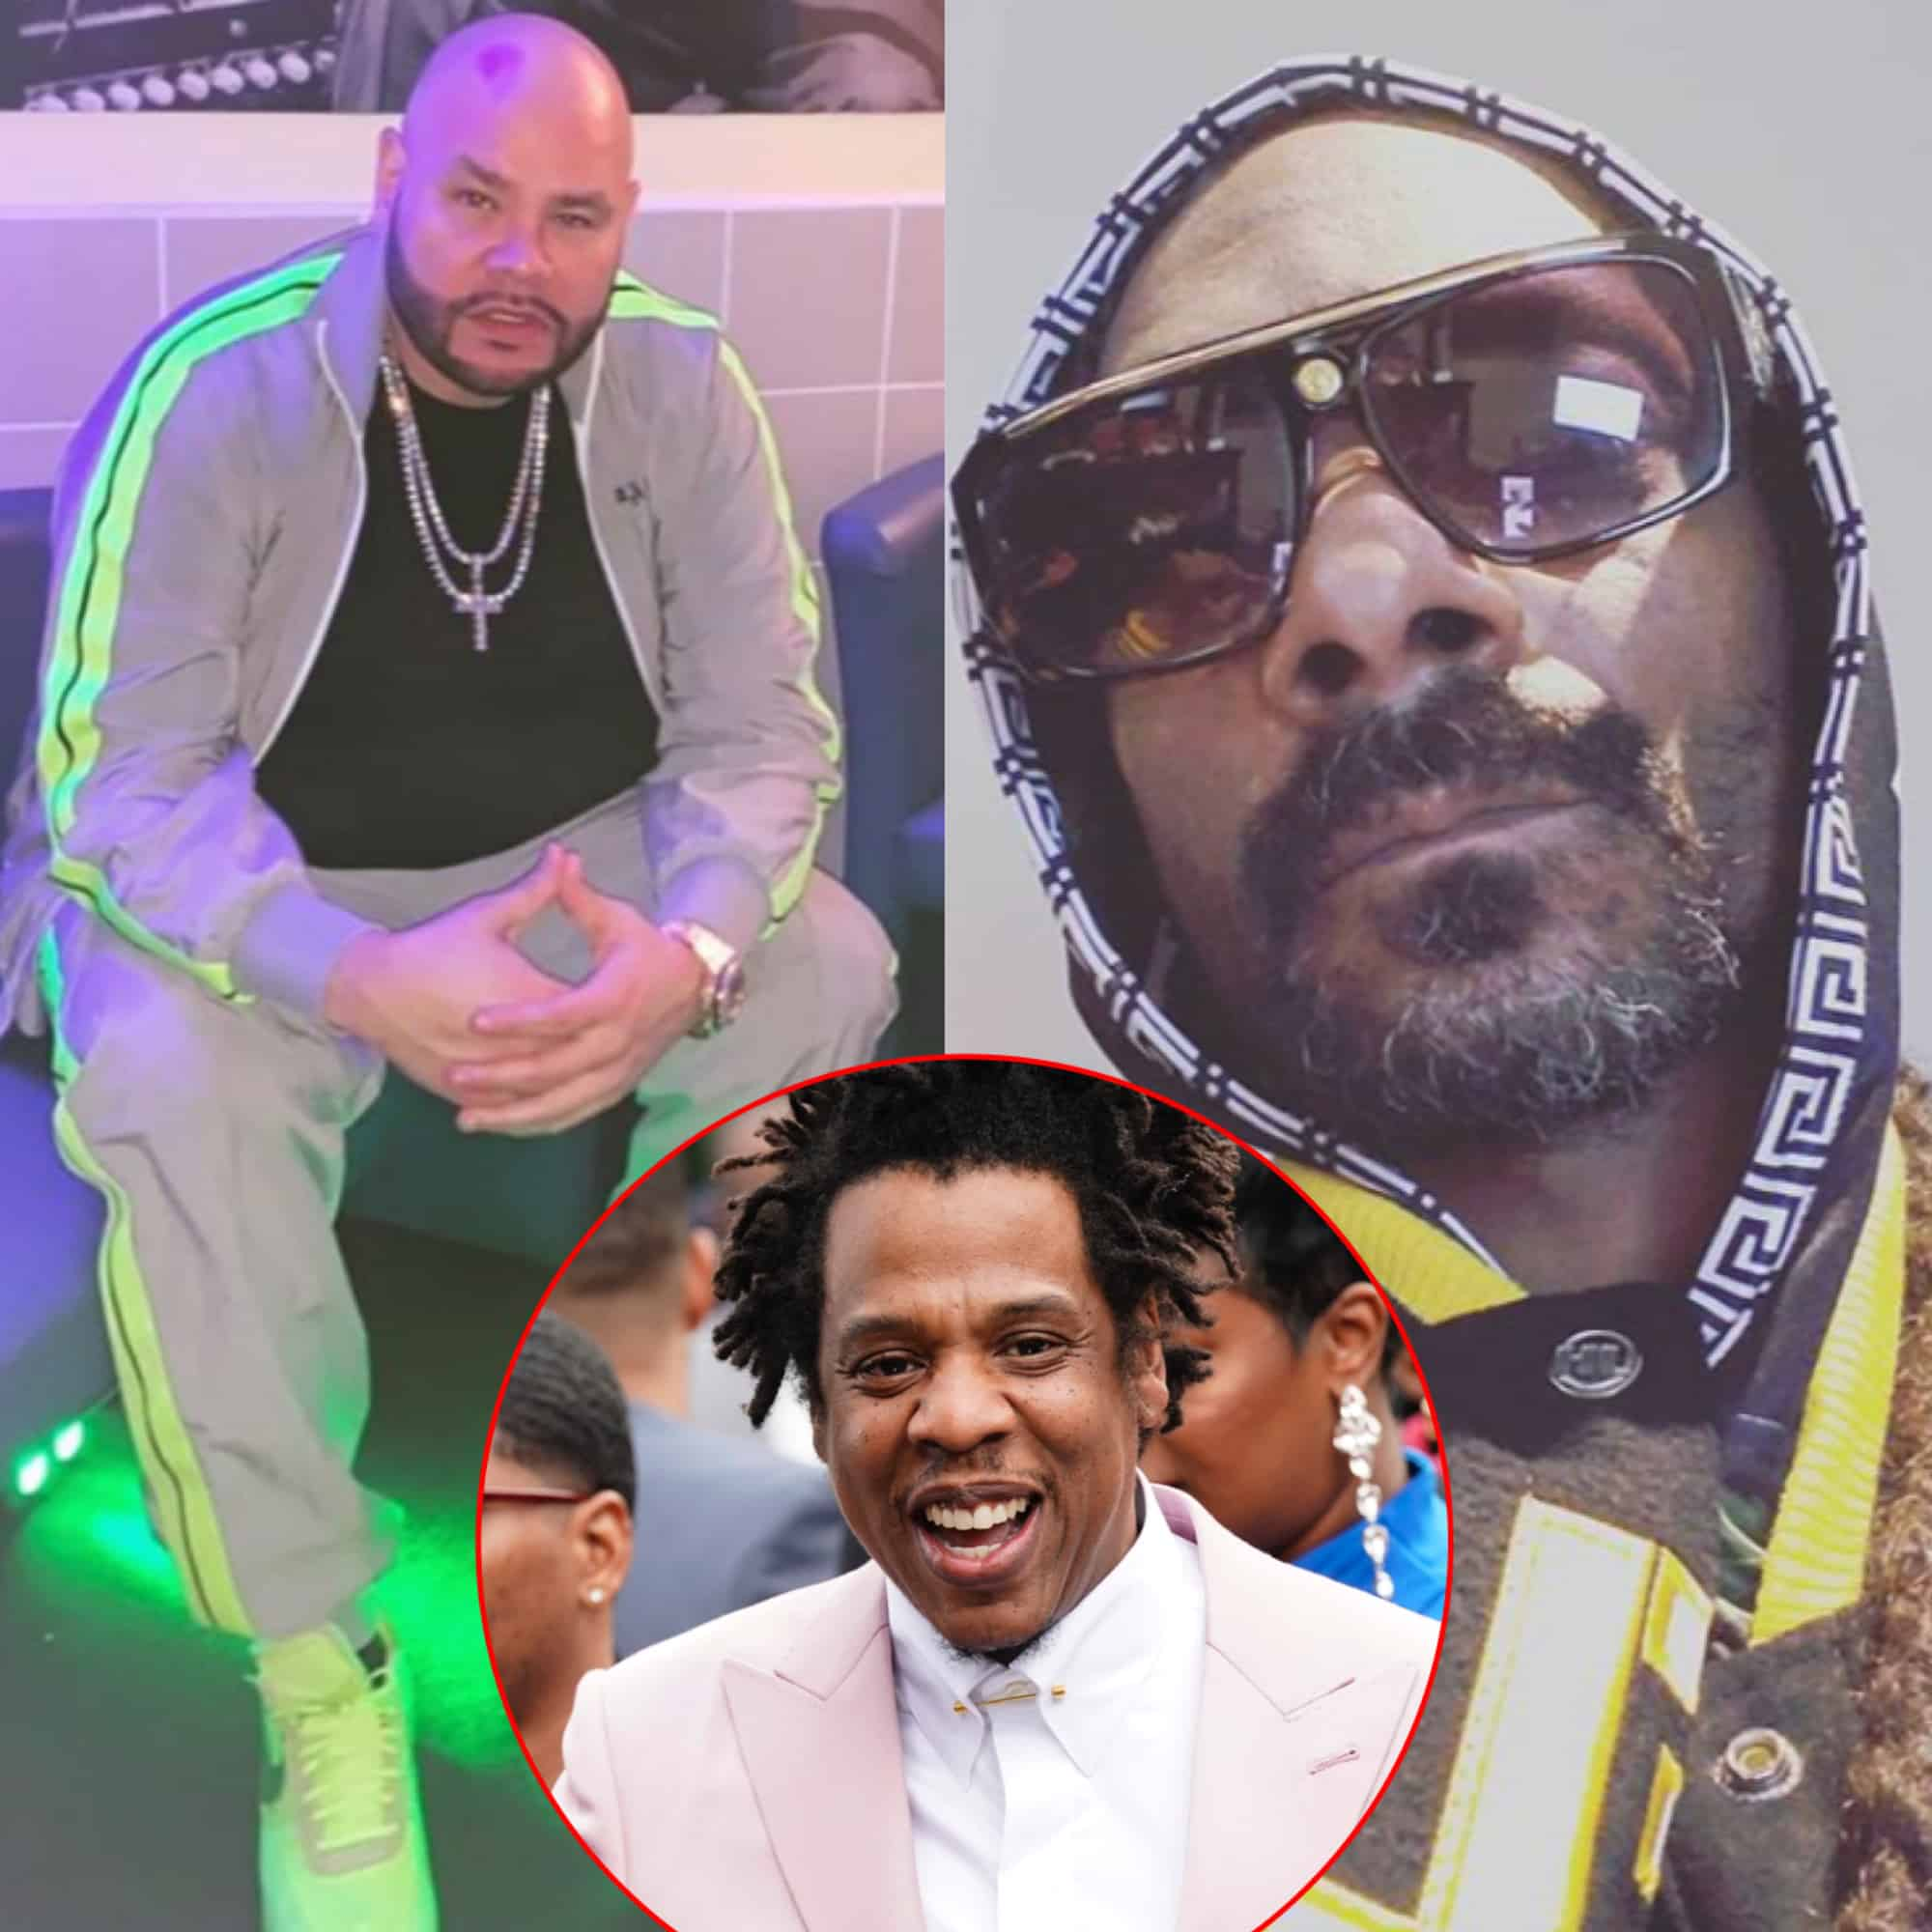 Snoop Dogg and Fat Joe had a recent discussion of the recent battles and Snoop Dogg says he could see himself going against Jay-Z.